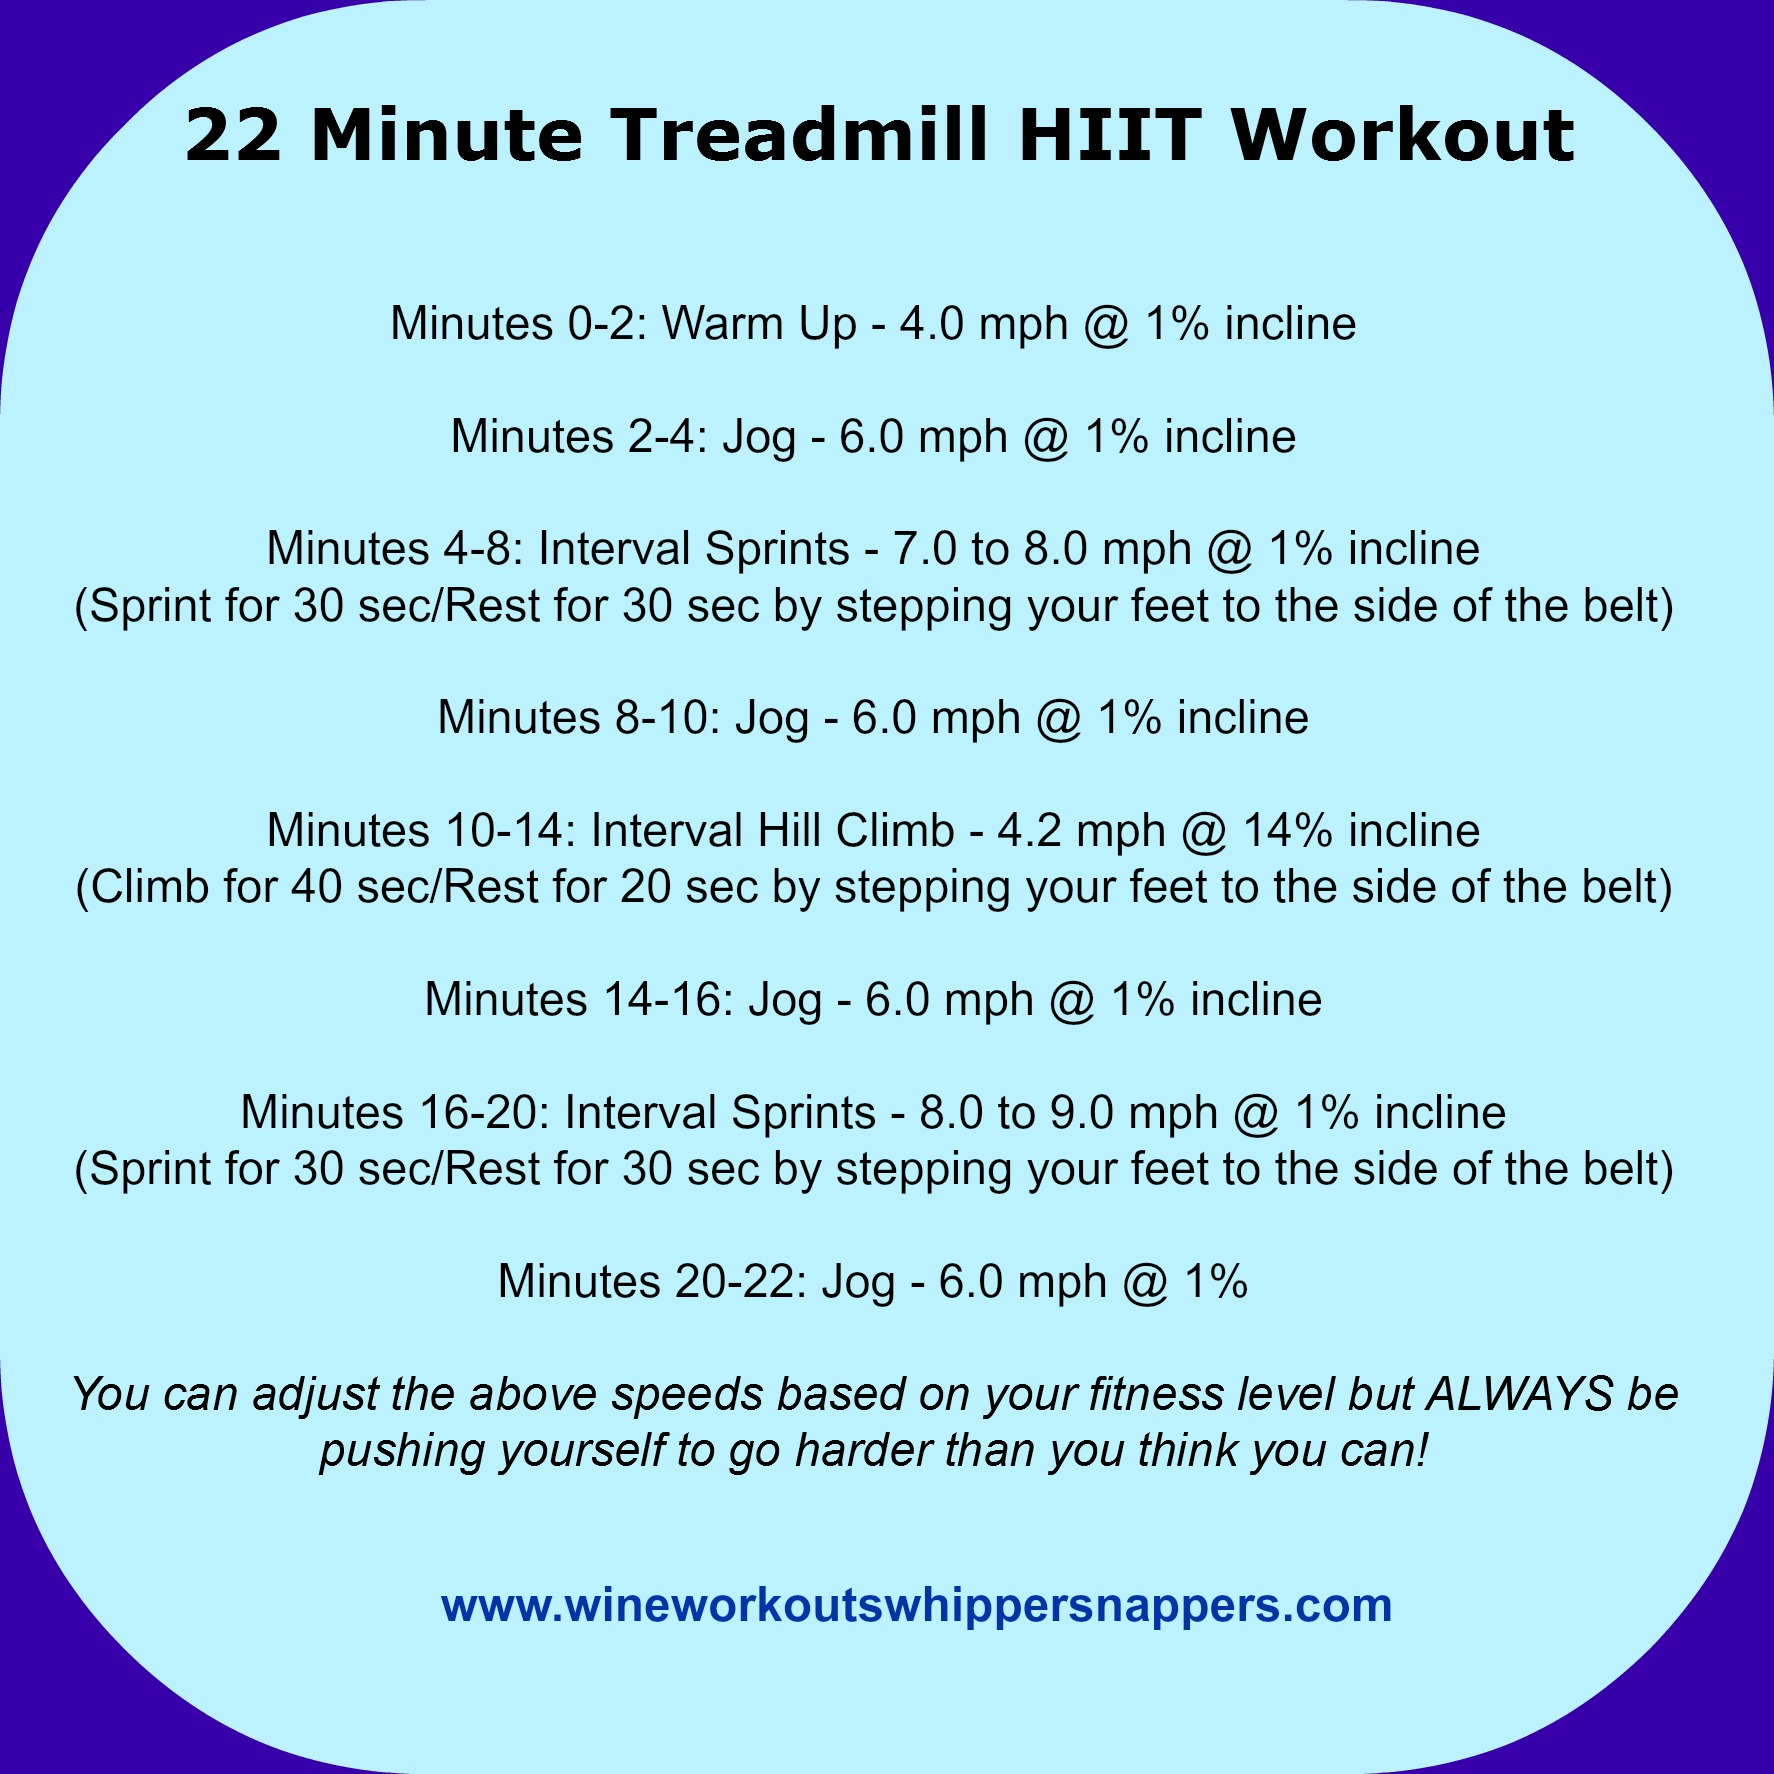 22 Minute Treadmill HIIT.jpg